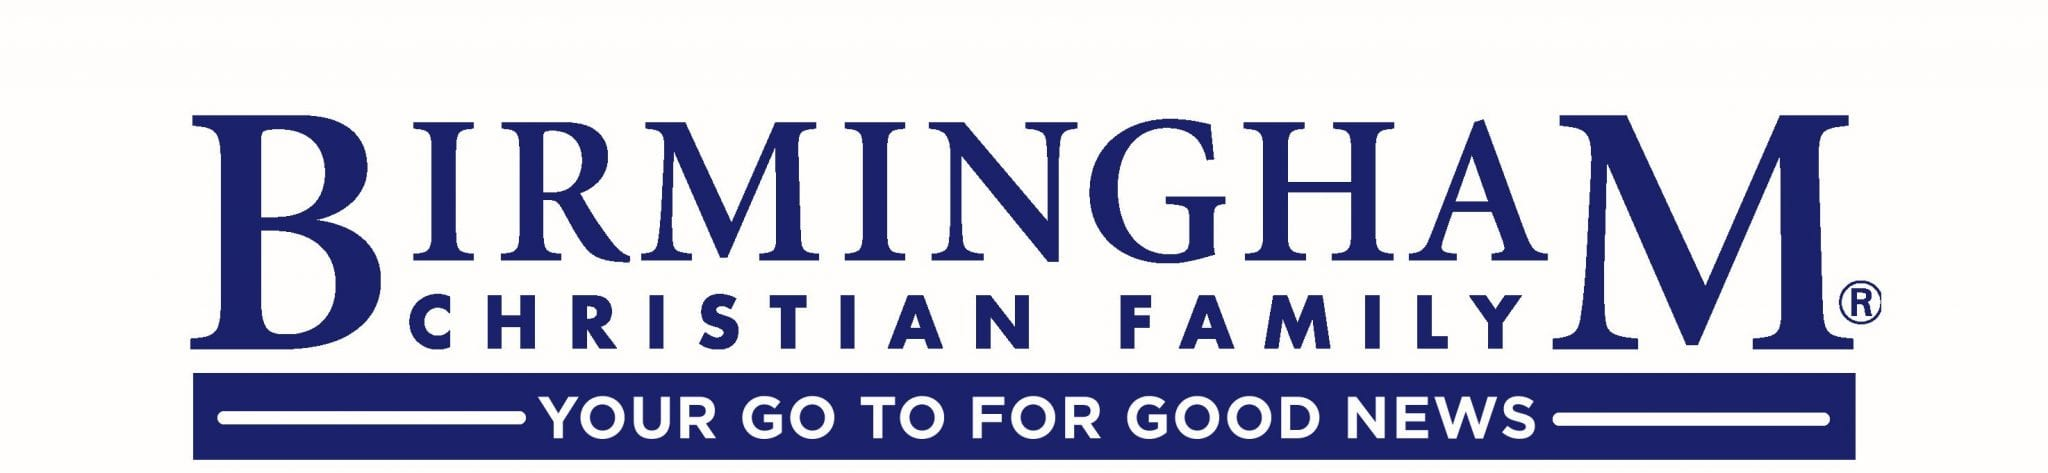 Birmingham Christian Family masthead with Your Go To For Good News